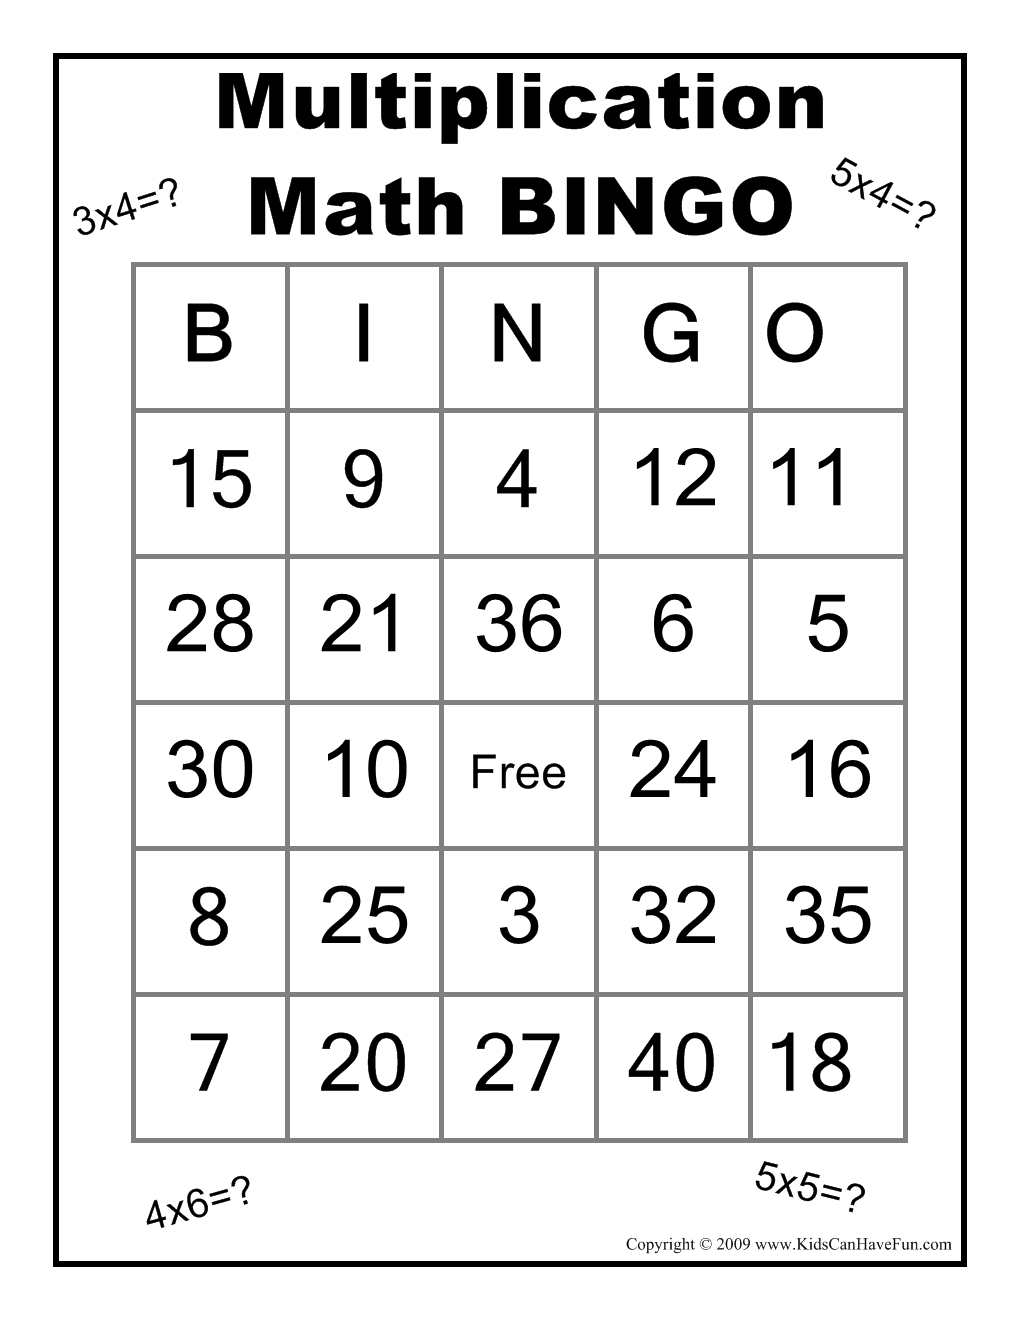 Multiplication Math Bingo Game | Wiskunde